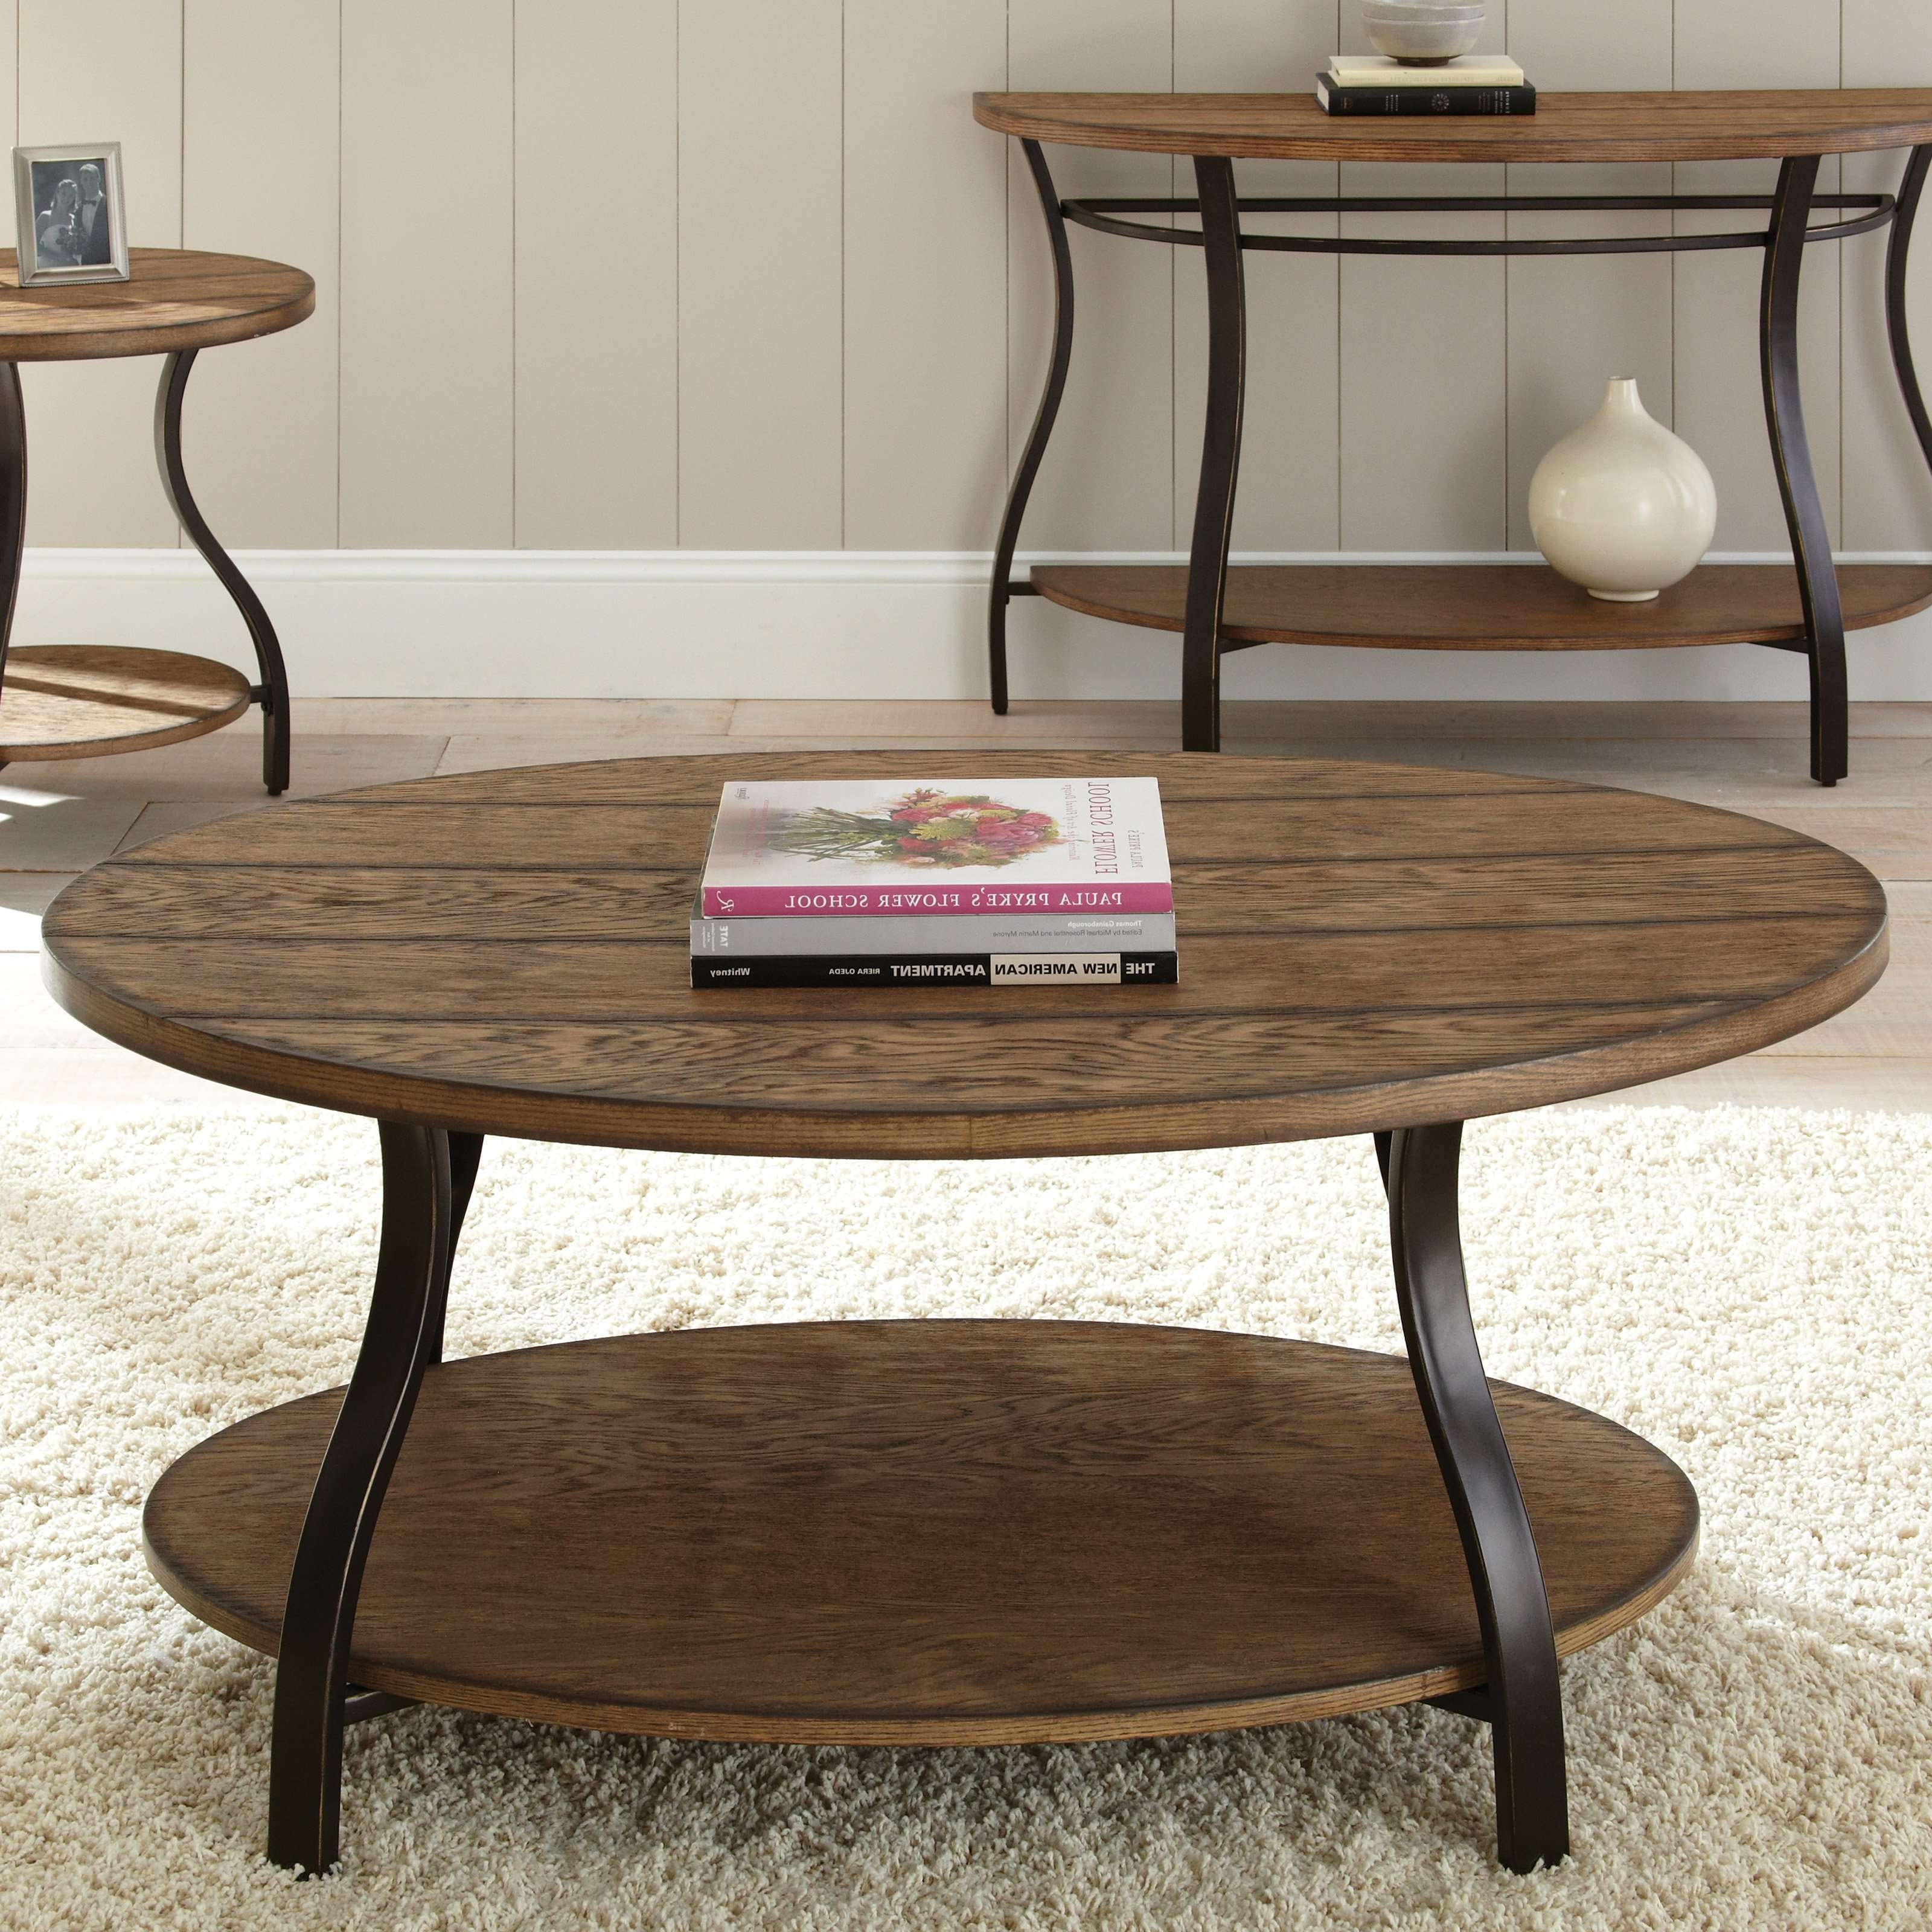 Coffee Table : Fabulous Rustic Round Coffee Table Large Round Pertaining To Most Current Oval Wood Coffee Tables (View 3 of 20)